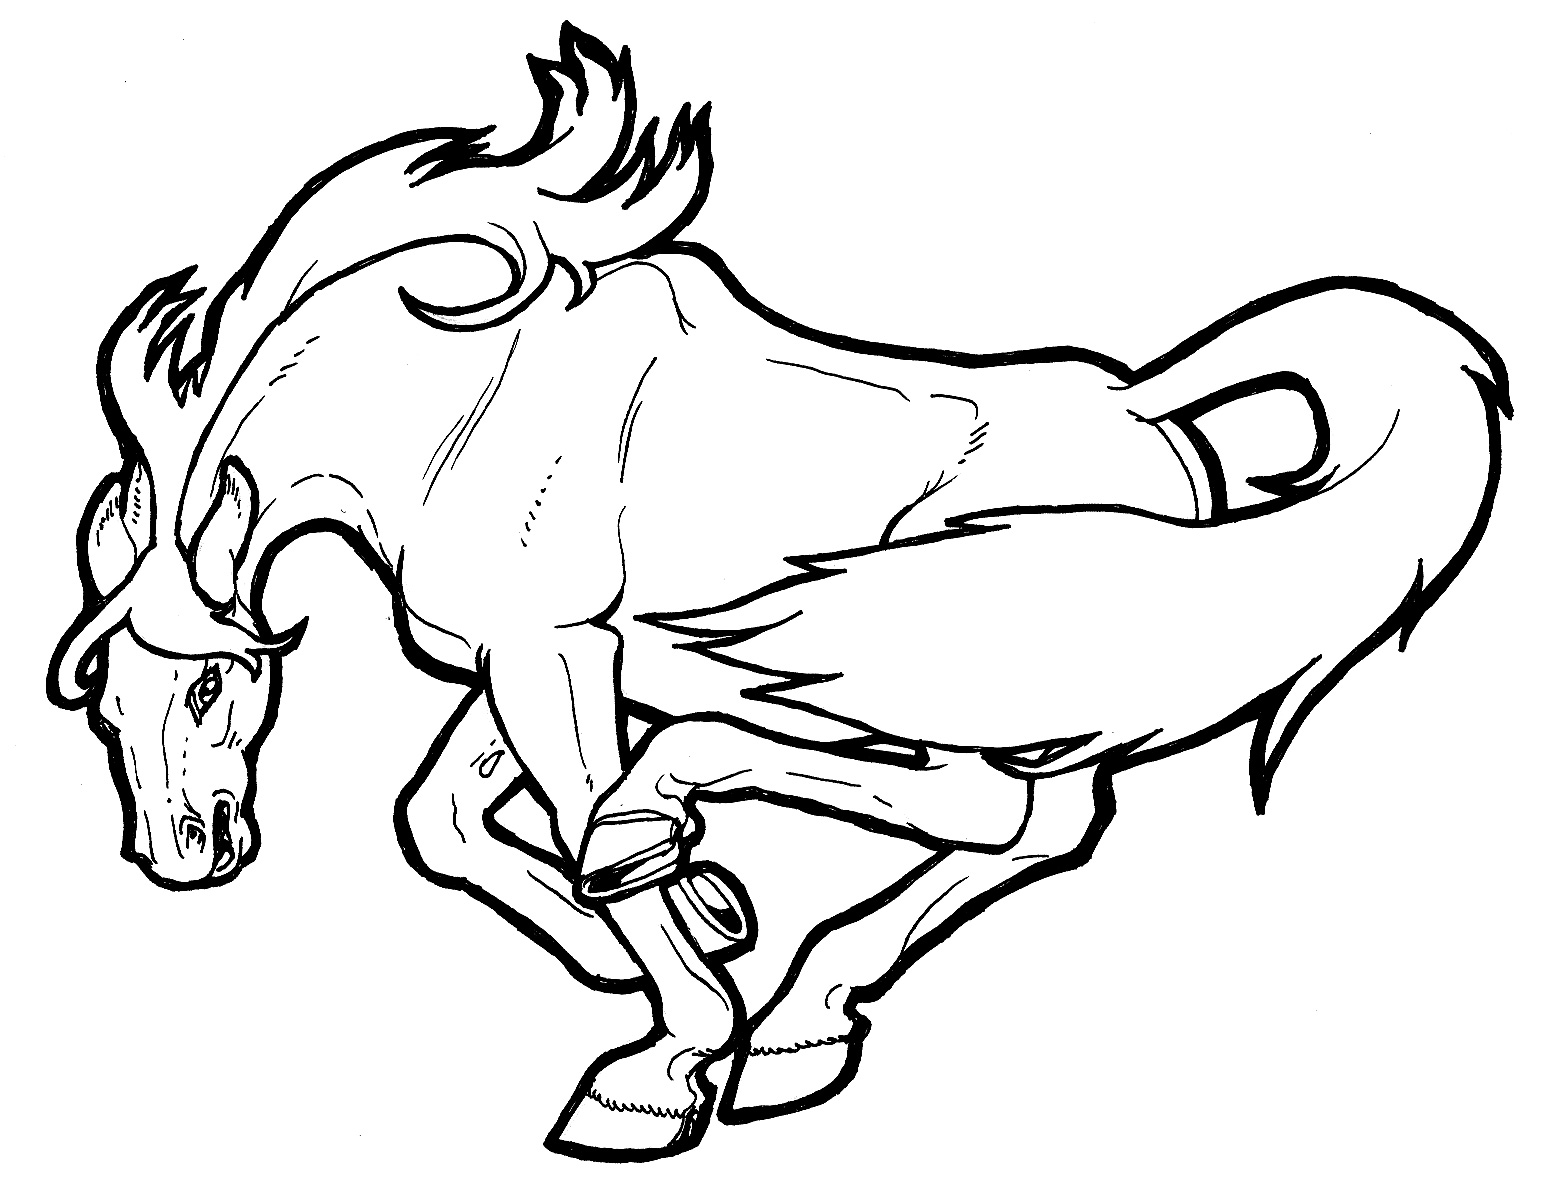 coloring sheet horse realistic horse coloring pages to download and print for free sheet horse coloring